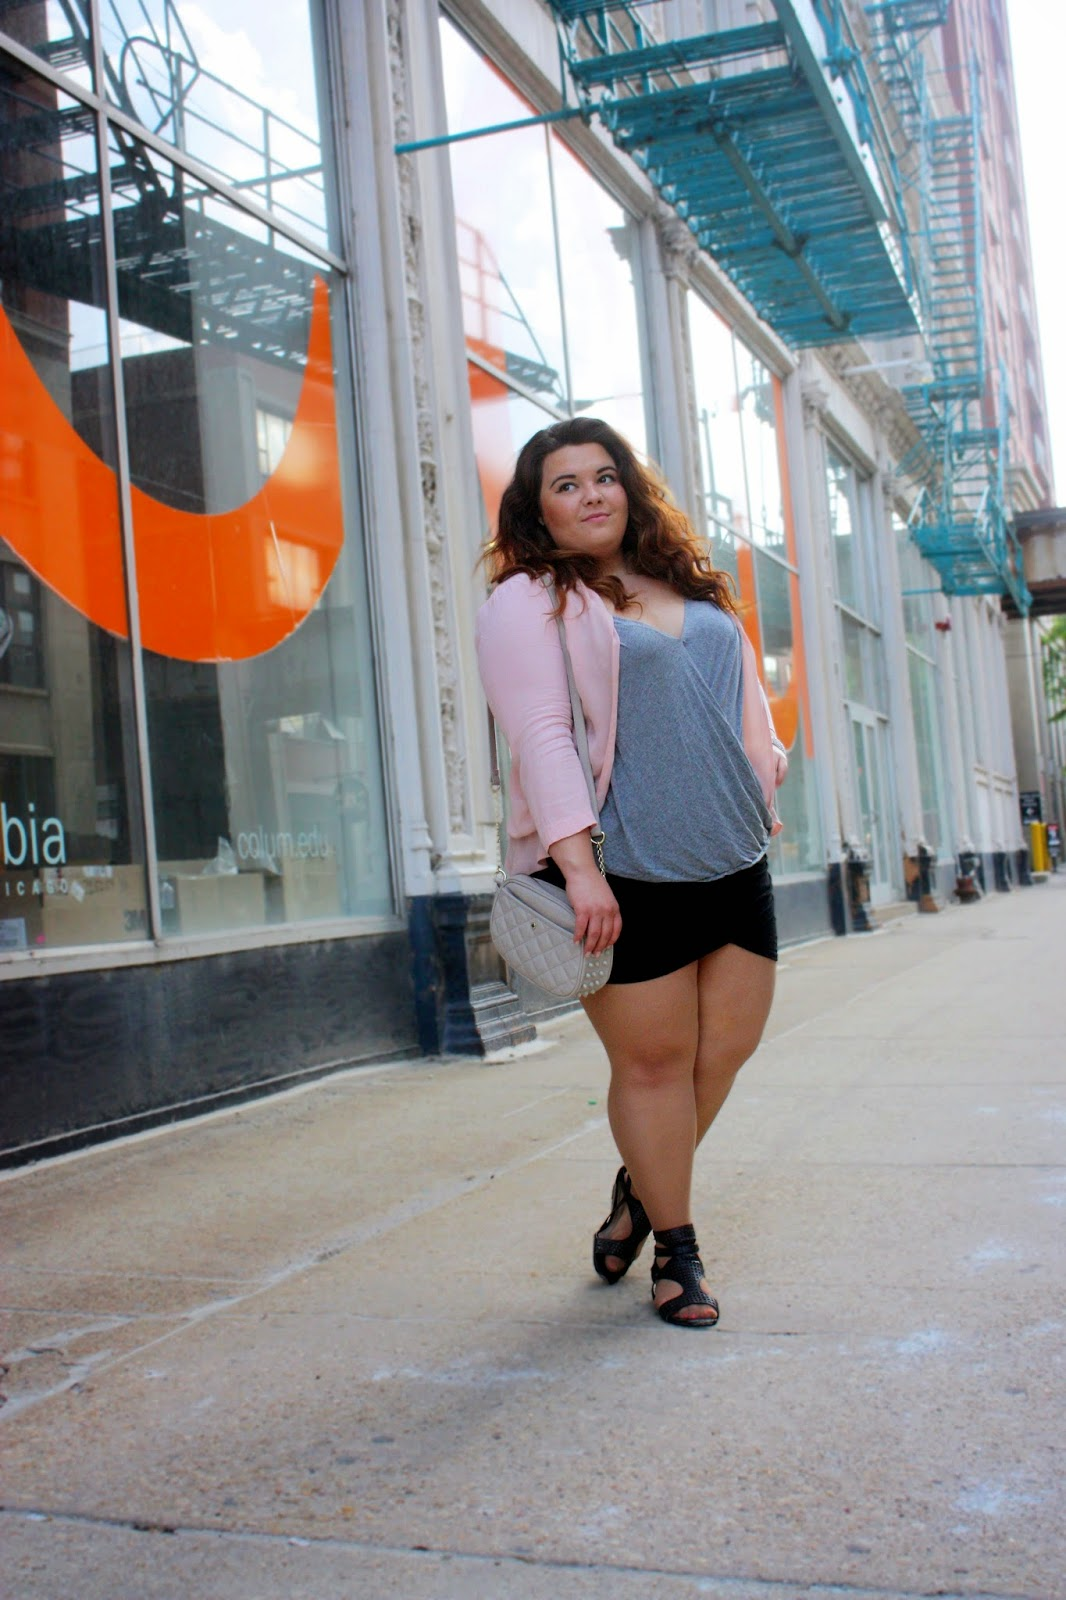 plus size fashion blogger, Business casual, plus size fashion, skirt, curvy fashionista, summer style, chicago, natalie in the city, natalie craig, columbia college chicago, nude bags, short skirt, curvy girl, curly ombre hair, pastels